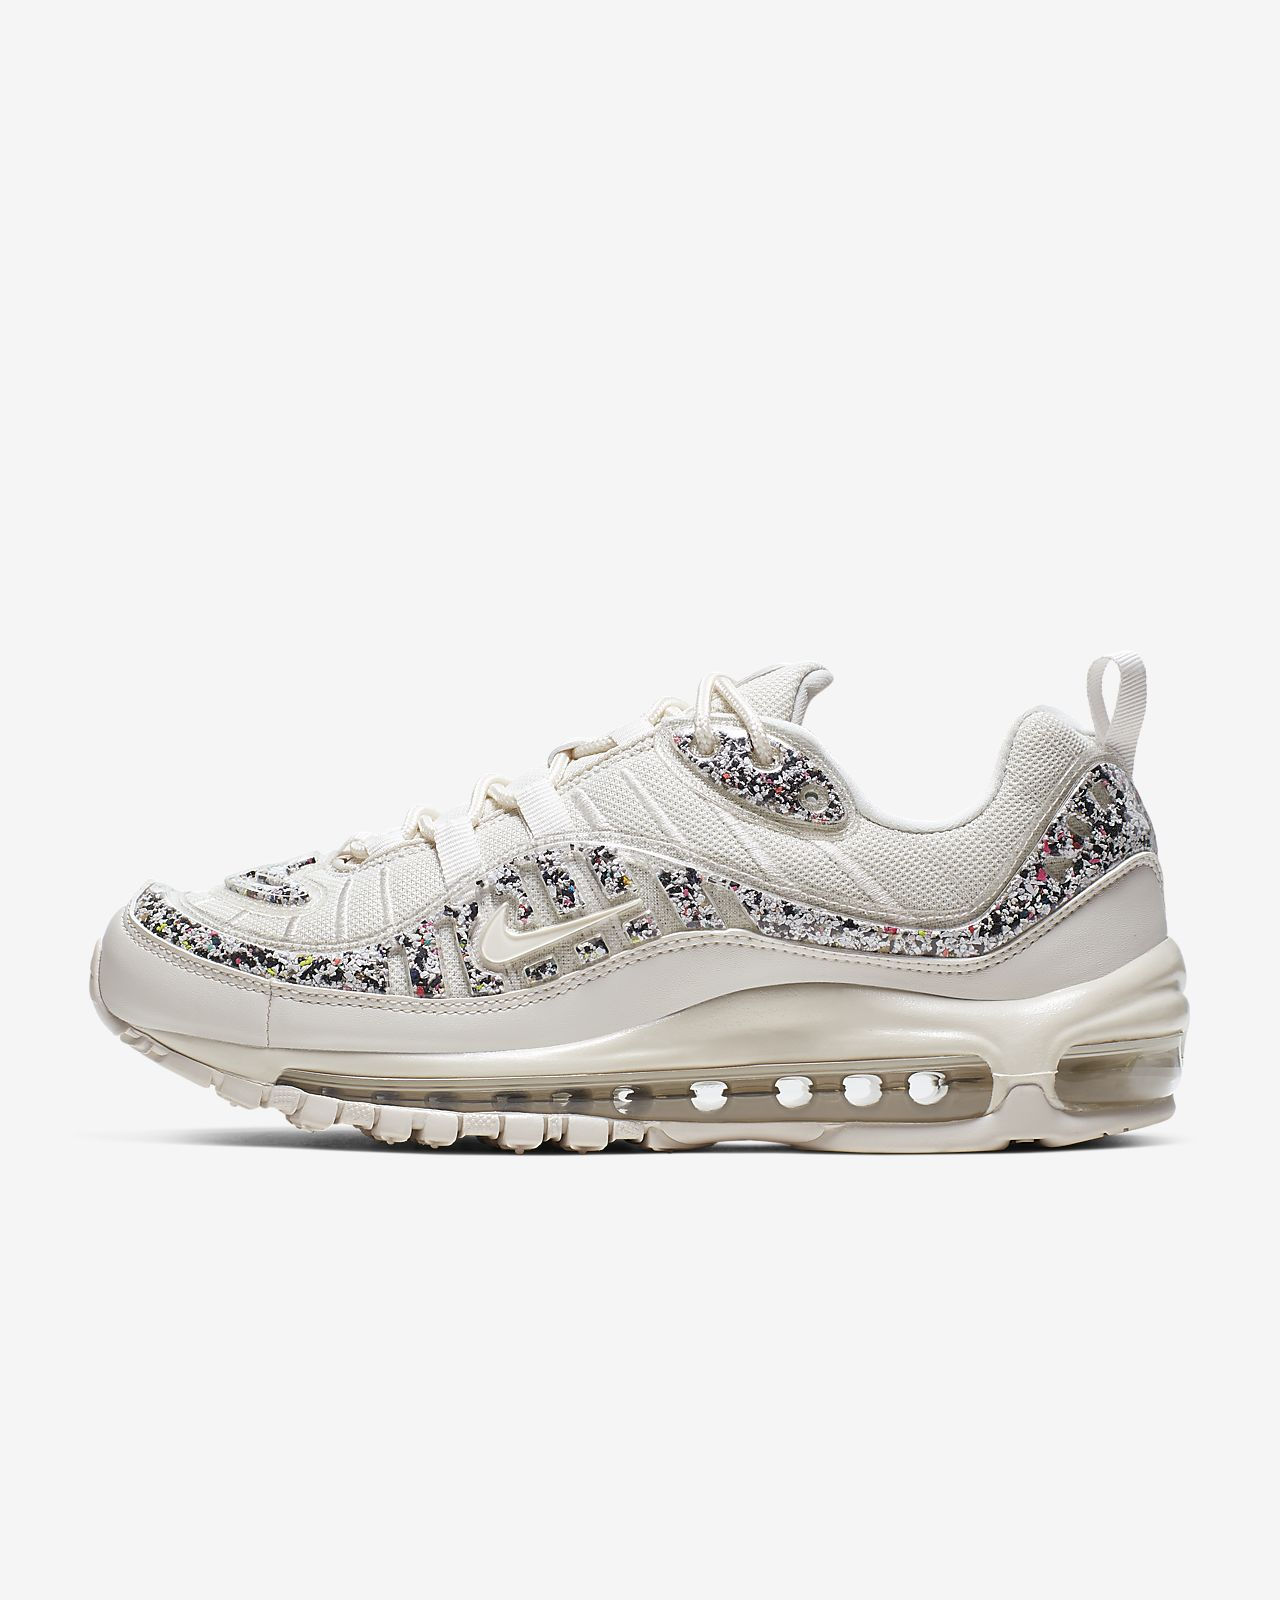 meilleur site web d6407 aaded Nike Air Max 98 LX Women's Shoe